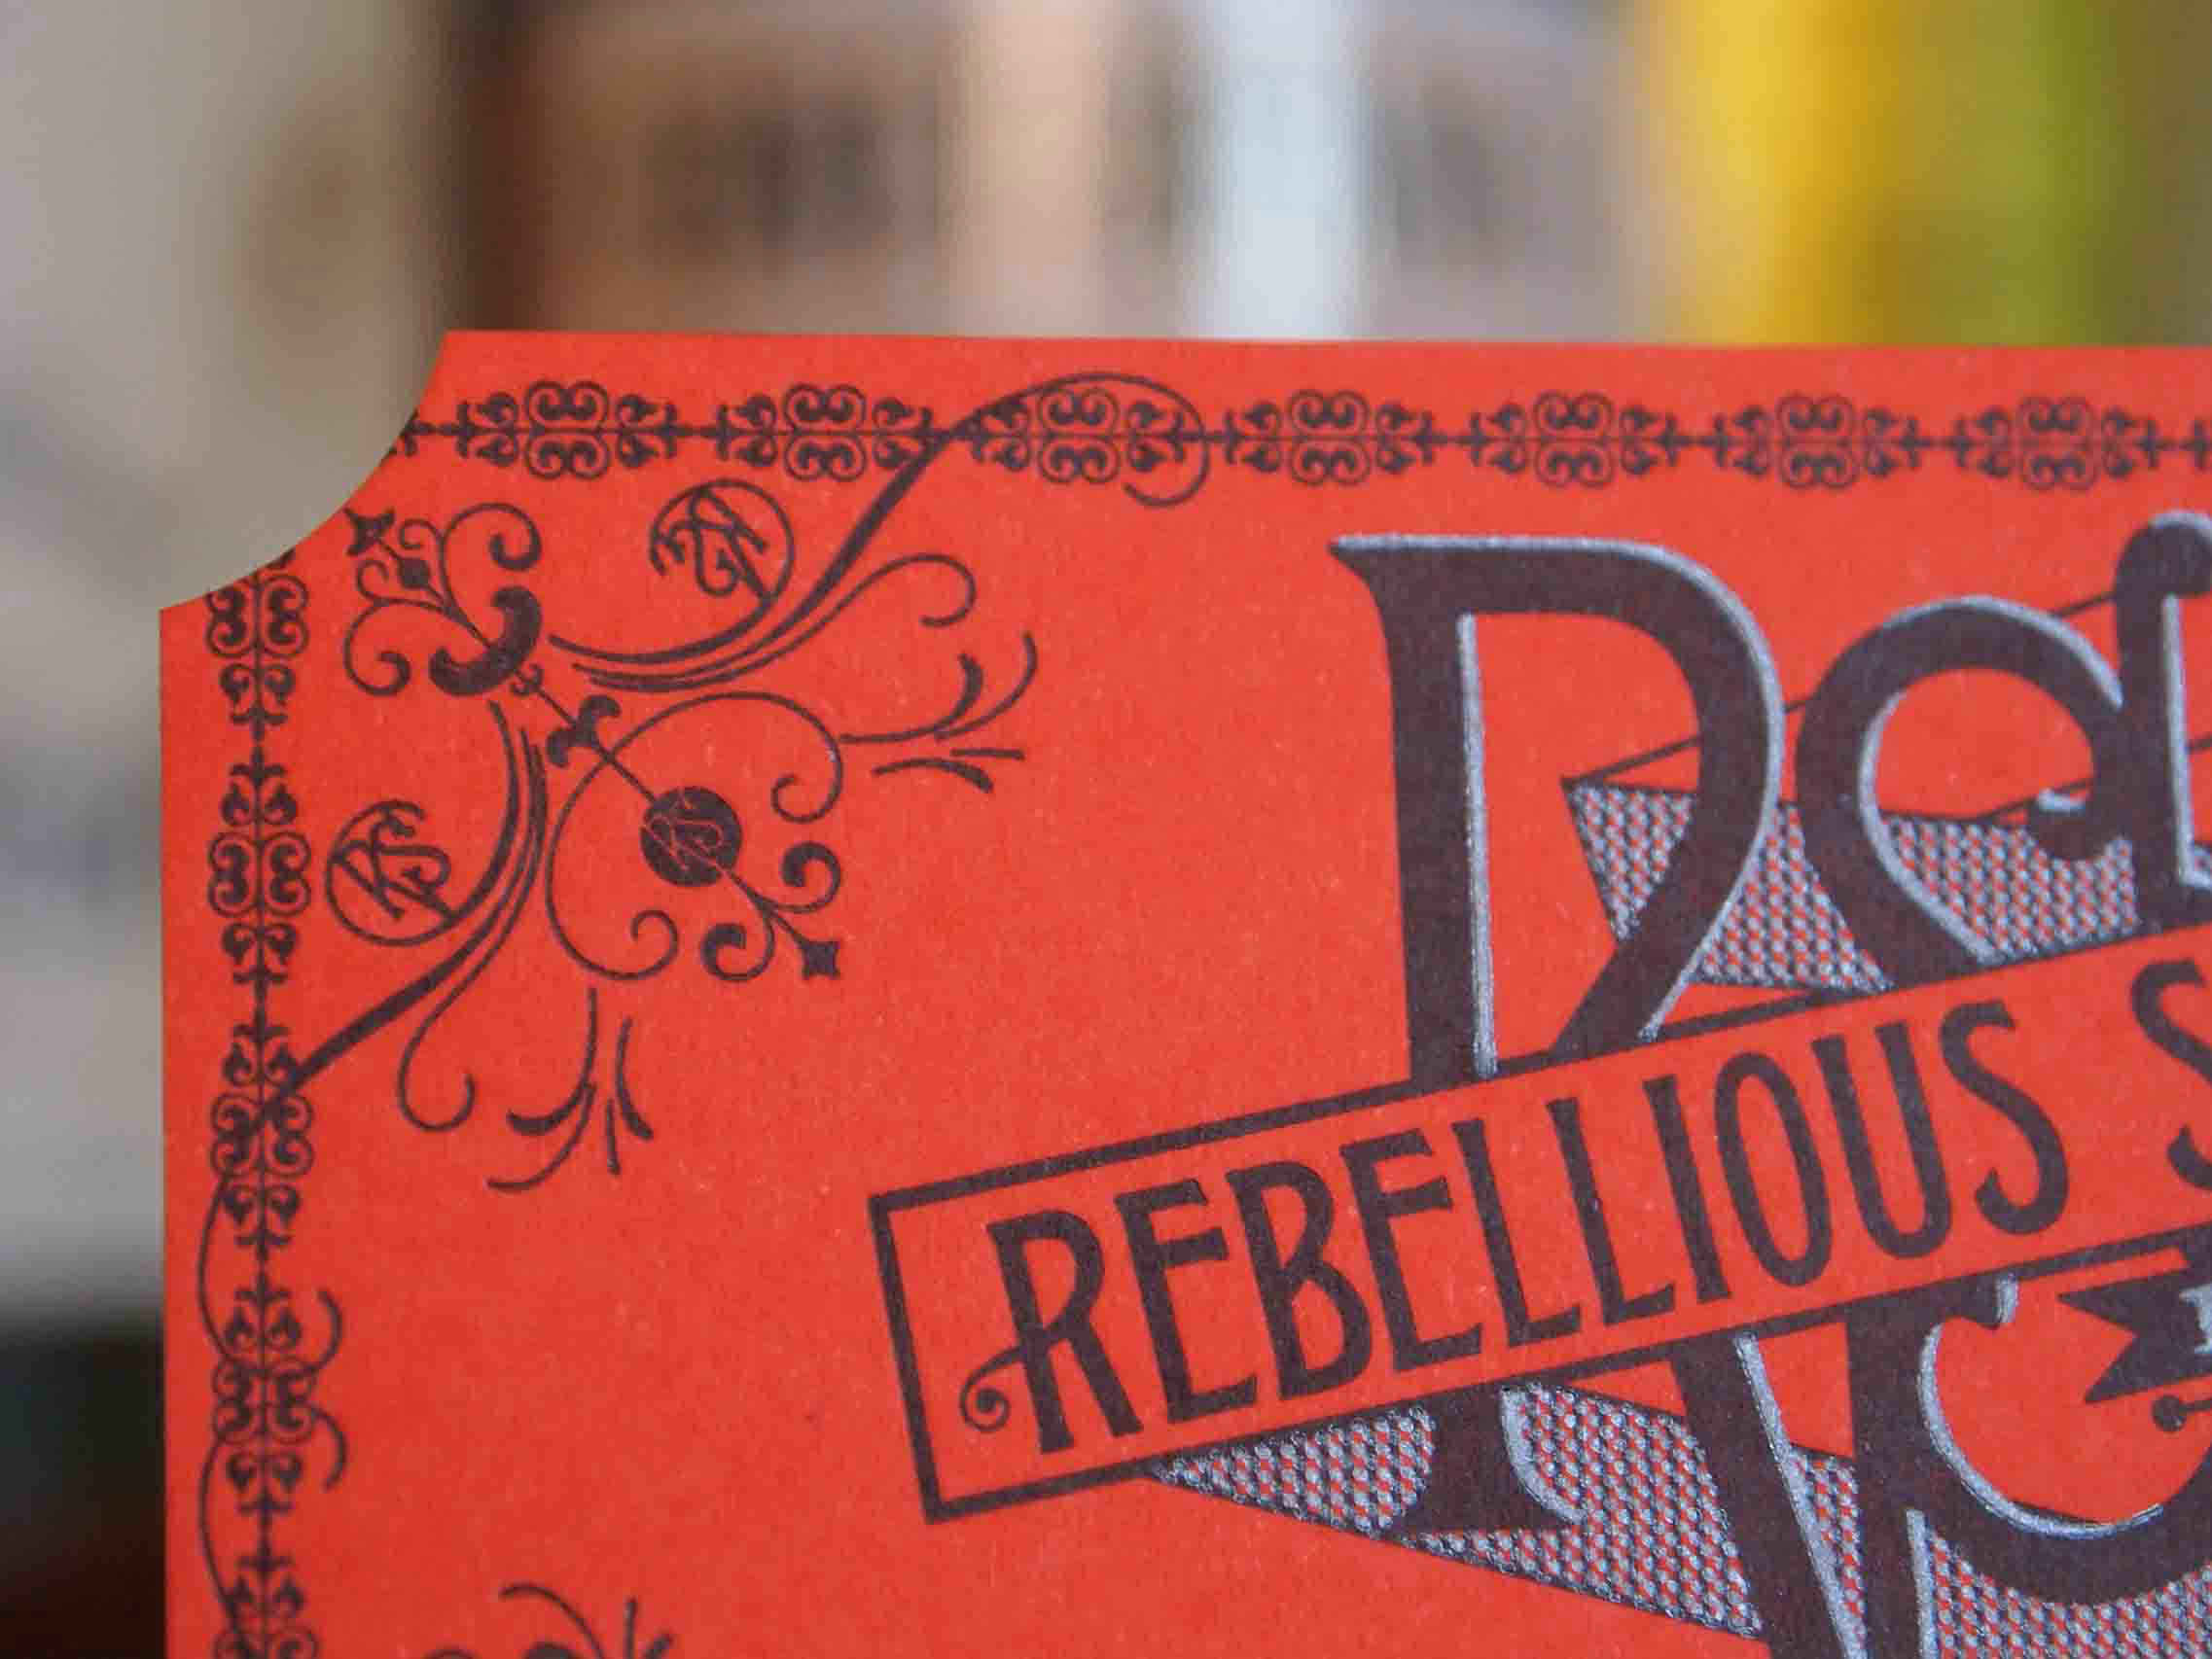 Rebellious Spirits die-cut business cards, designed and printed by us